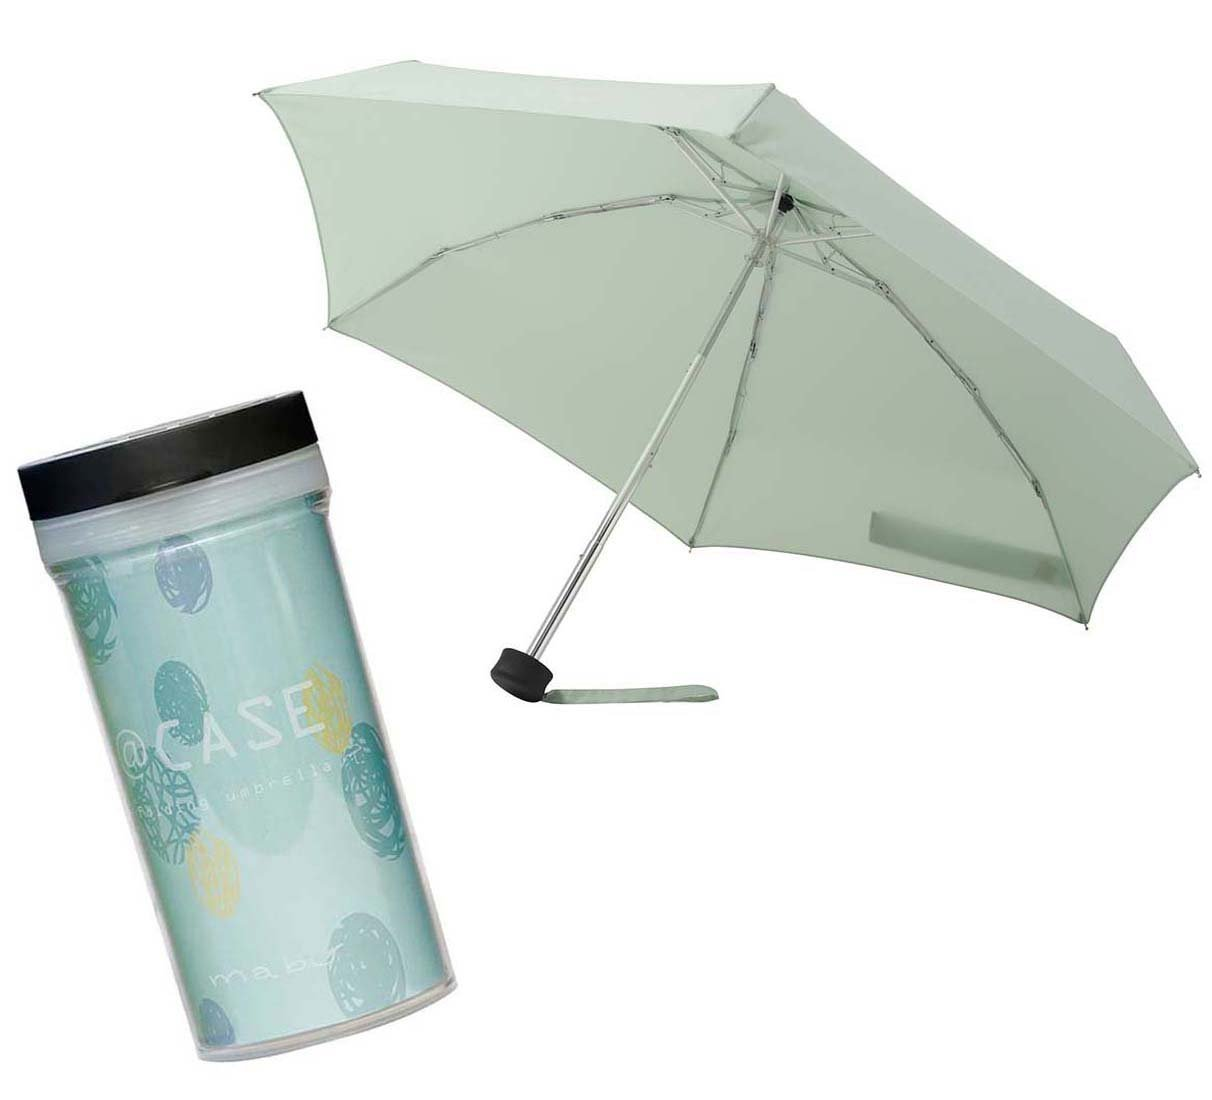 umbrella water MBU-TNU03 mabu Folding Case (japan import) by